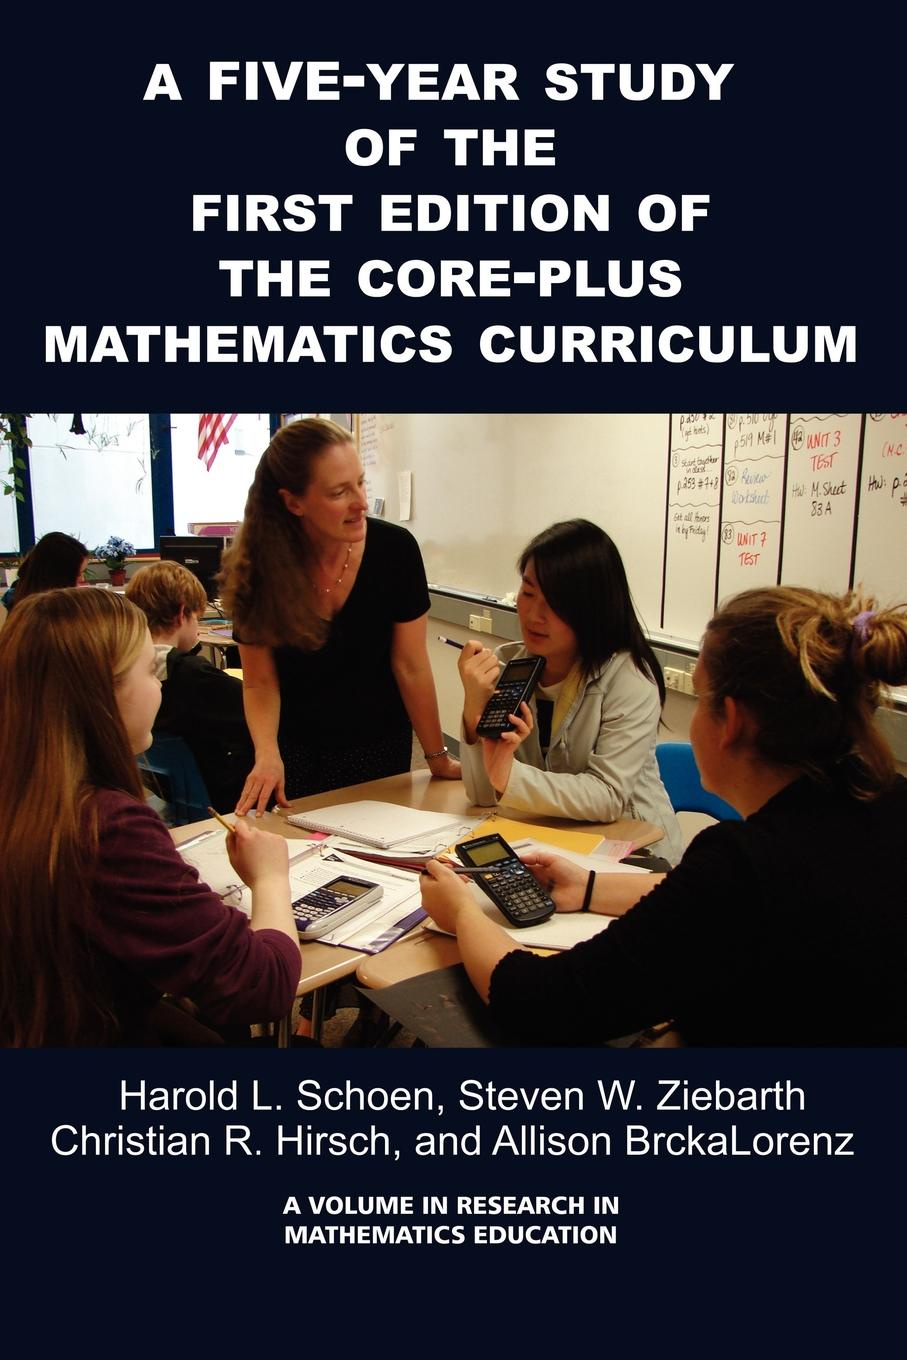 Фото - Harold Schoen, Steven W. Ziebarth, Christian R. Hirsch A 5-Year Study of the First Edition of the Core-Plus Mathematics Curriculum (PB) sense of efficacy in implementing social studies curriculum